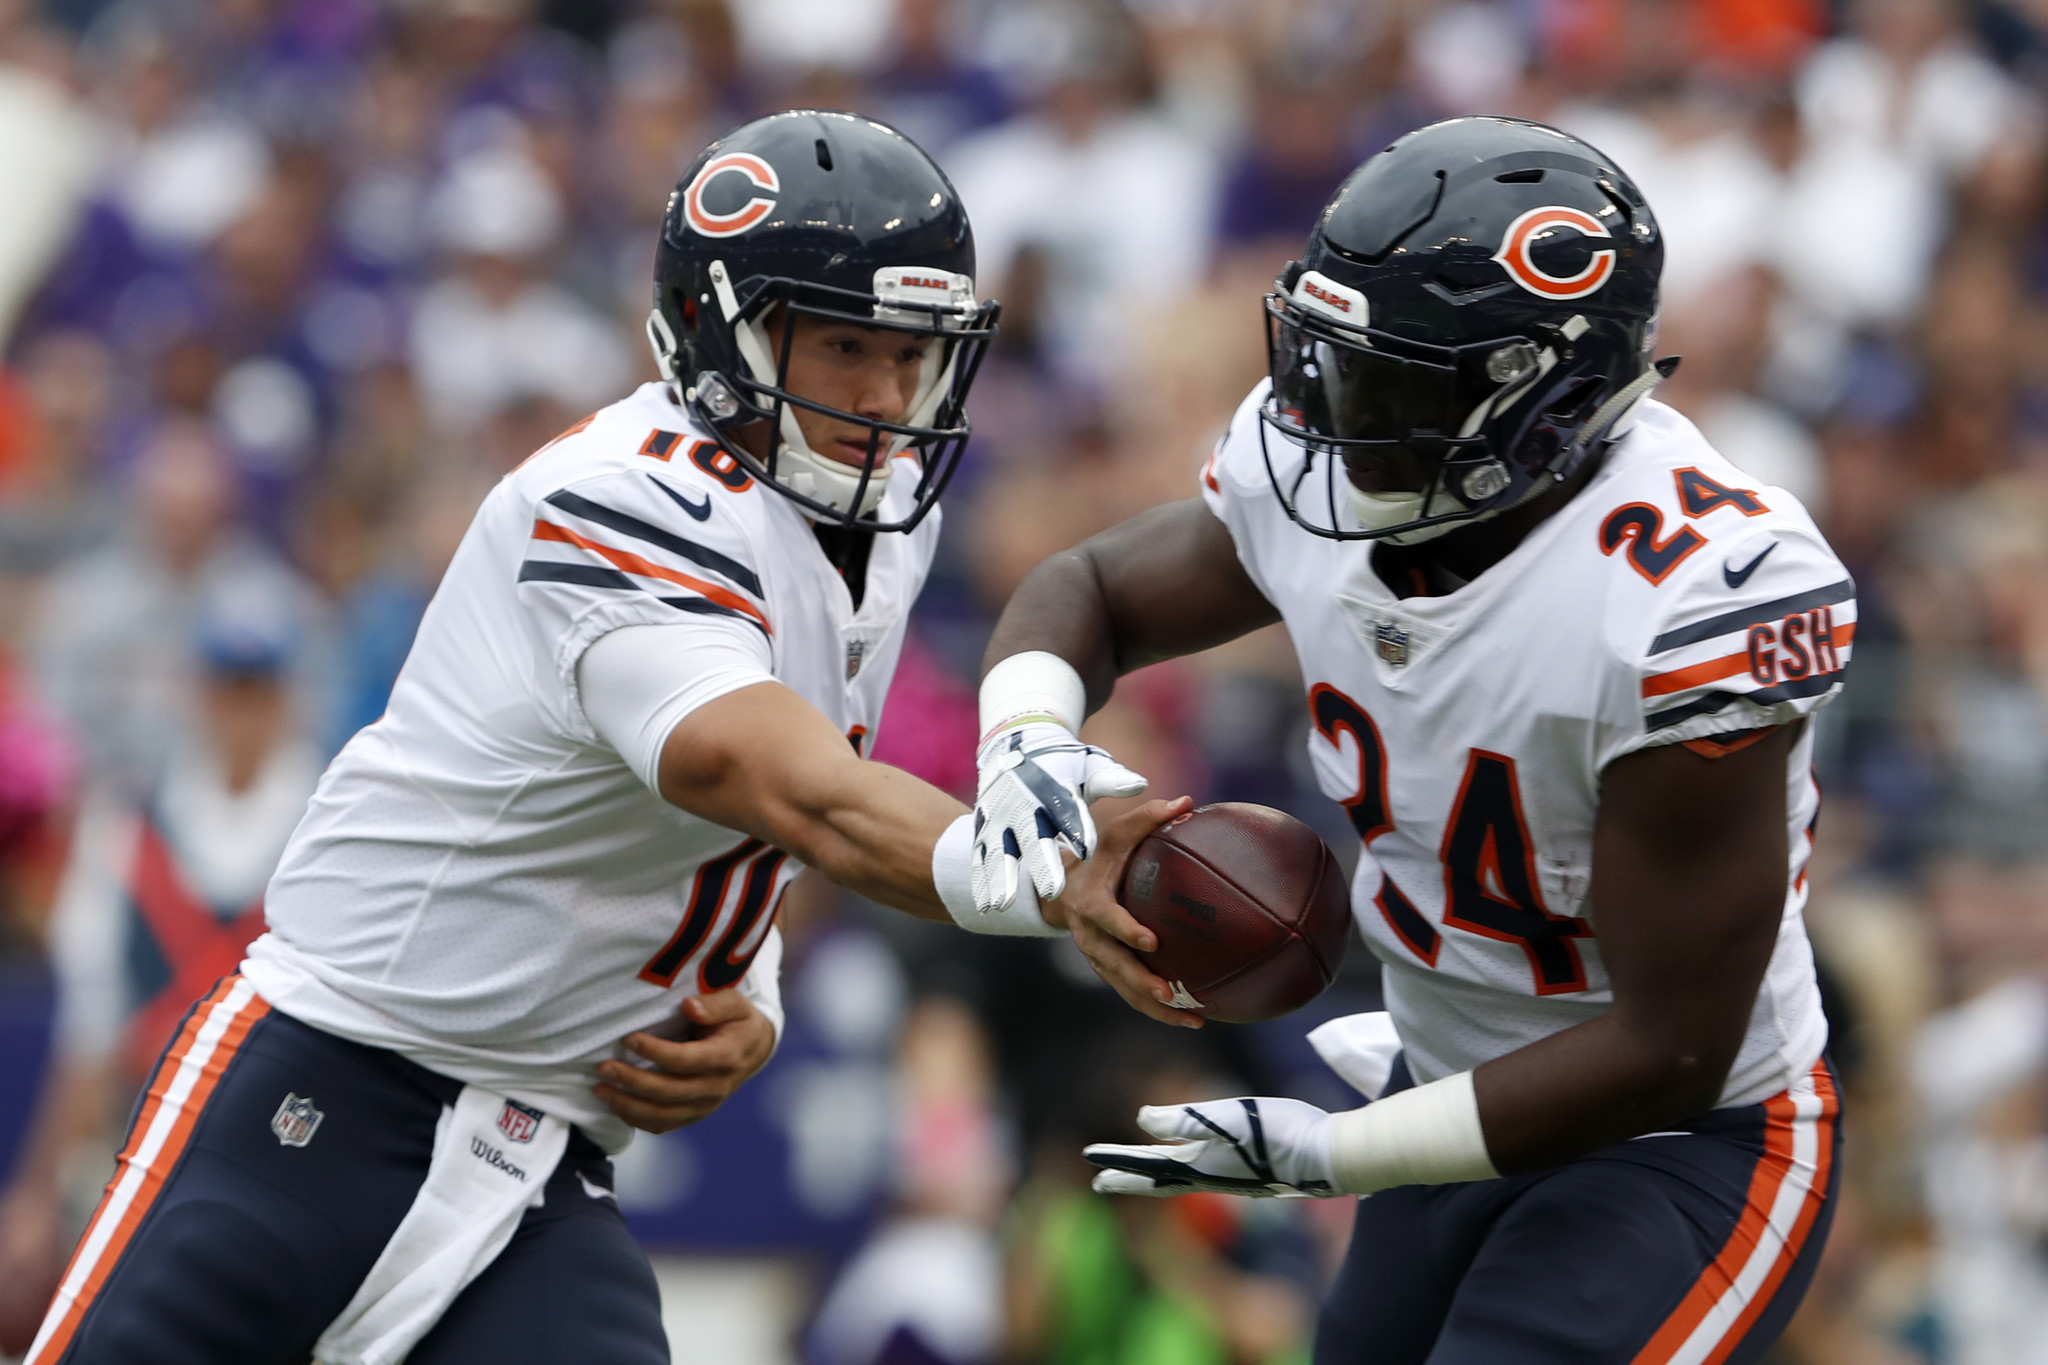 Bears vs. Panthers: Will the Bears win a 2nd straight game for 1st time since 2015?